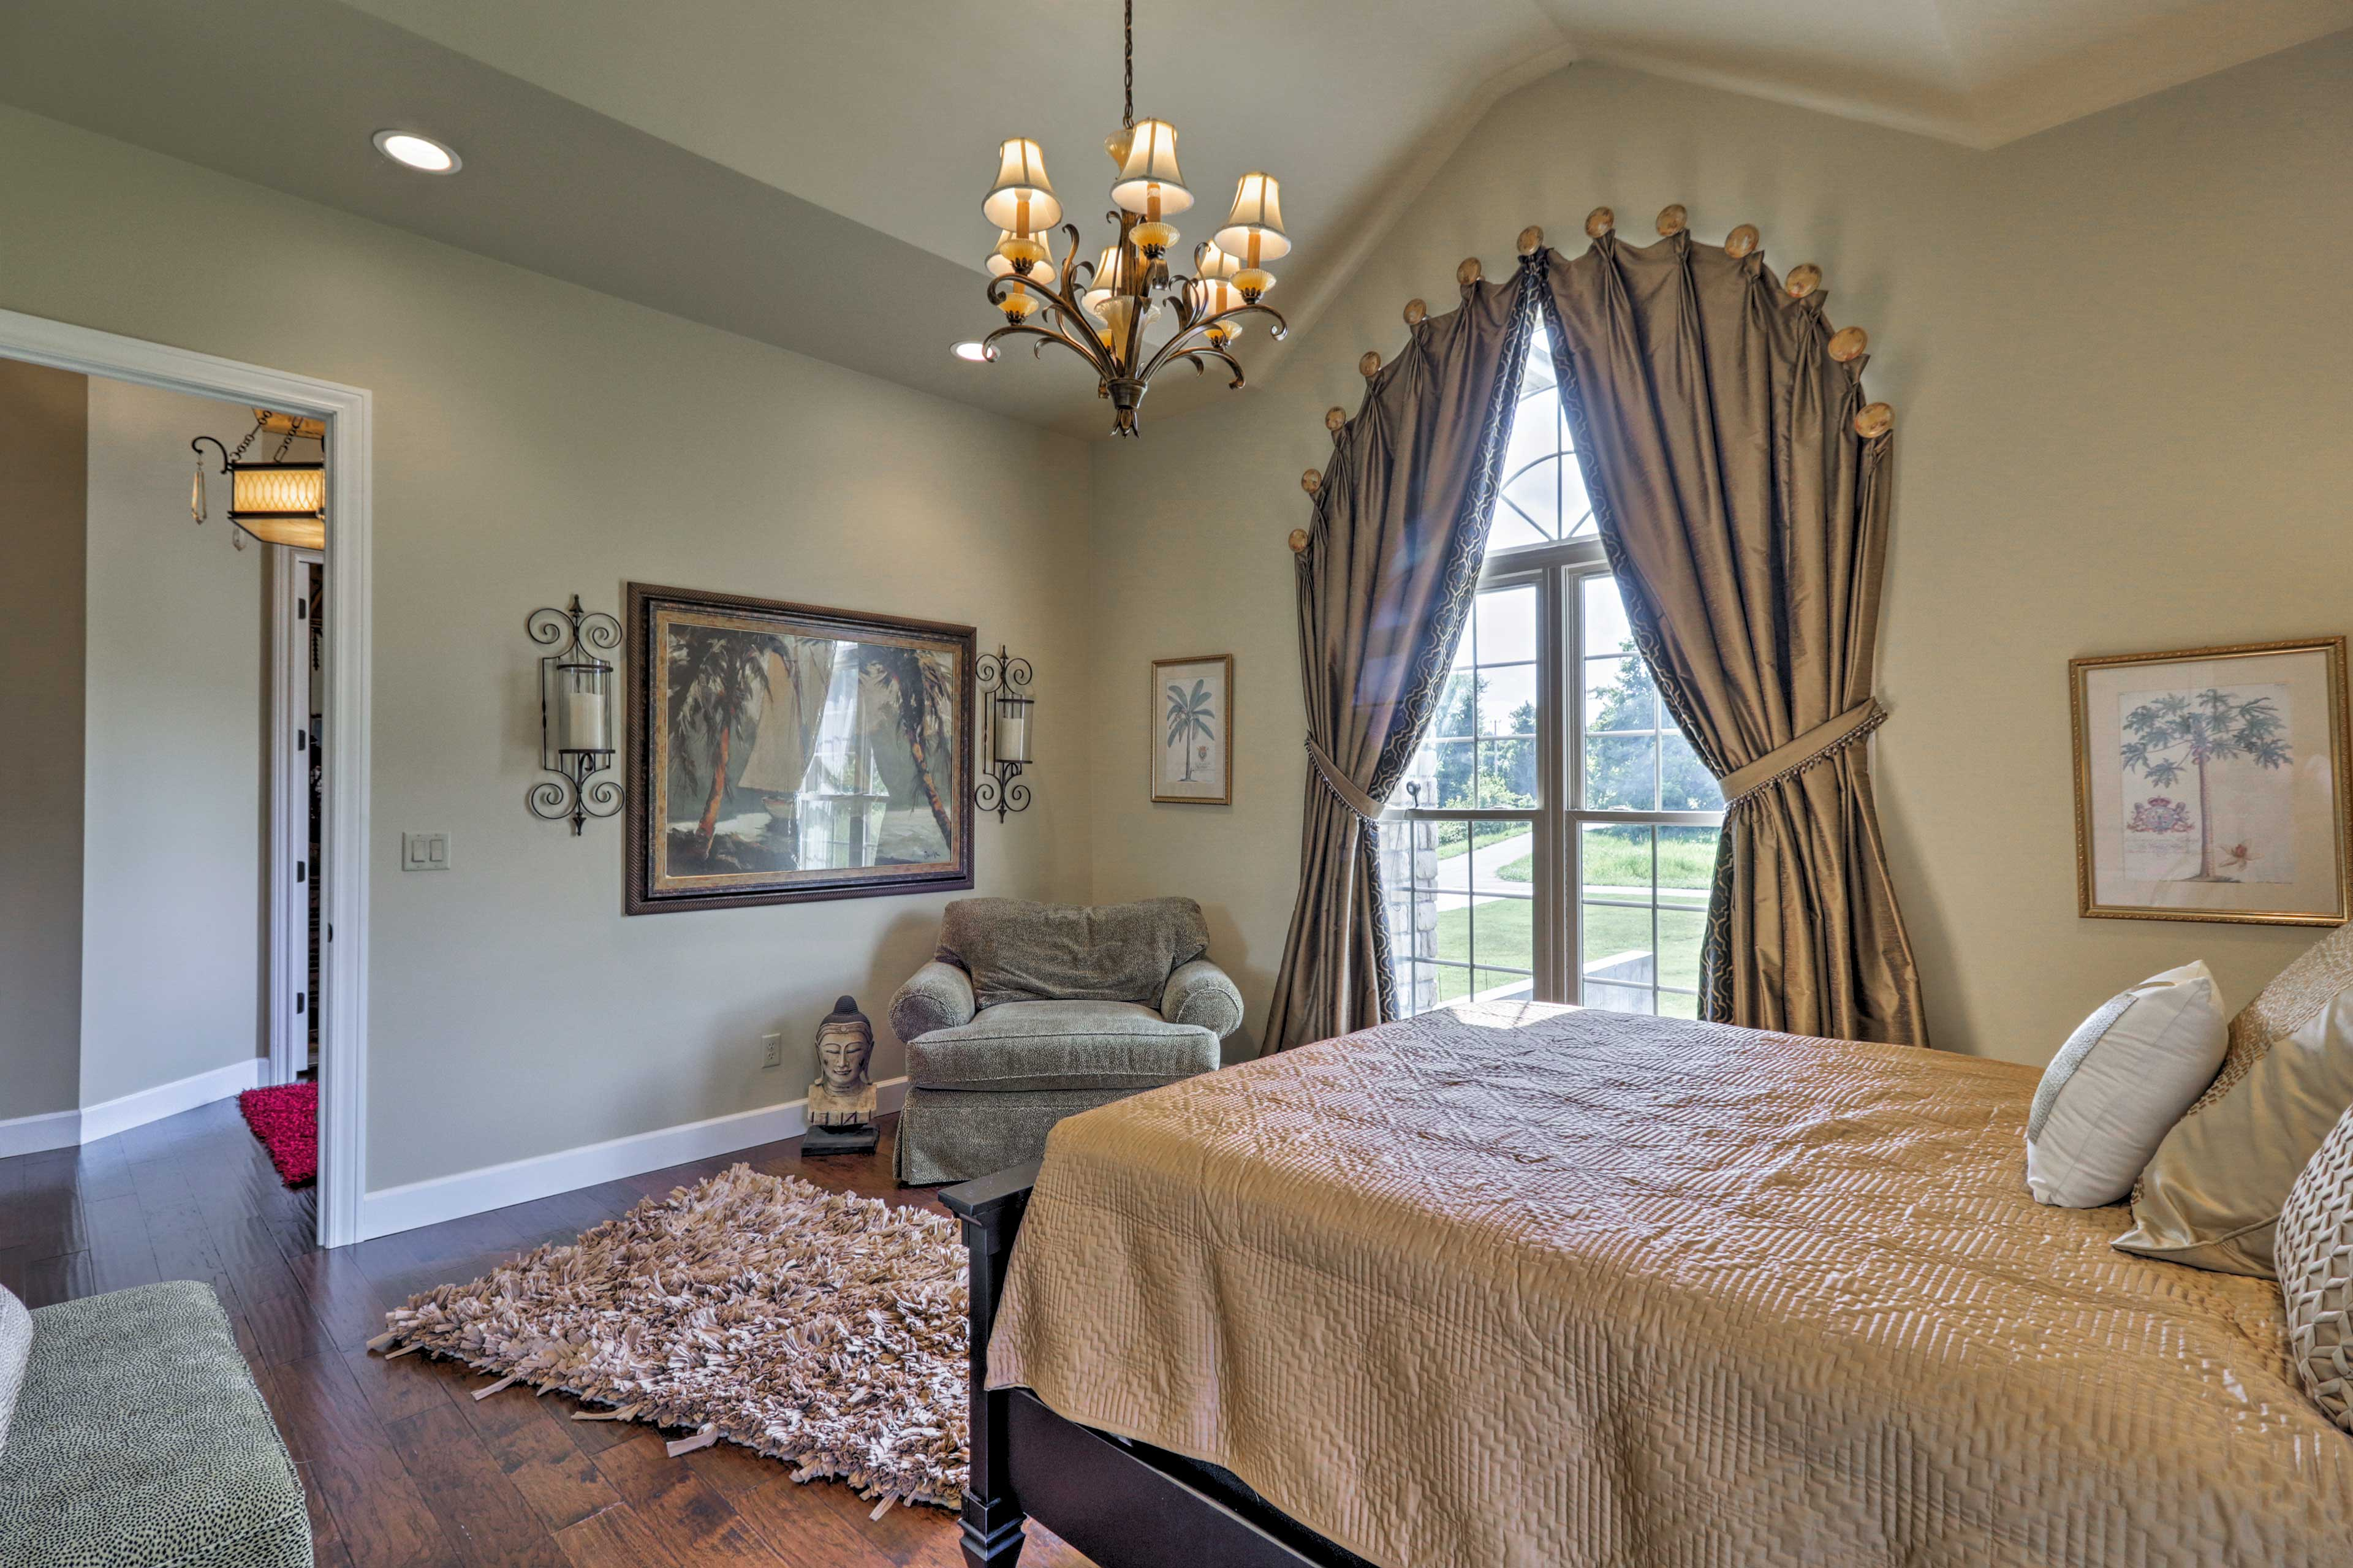 Vaulted ceilings and gorgeous draperies create an opulent atmosphere.